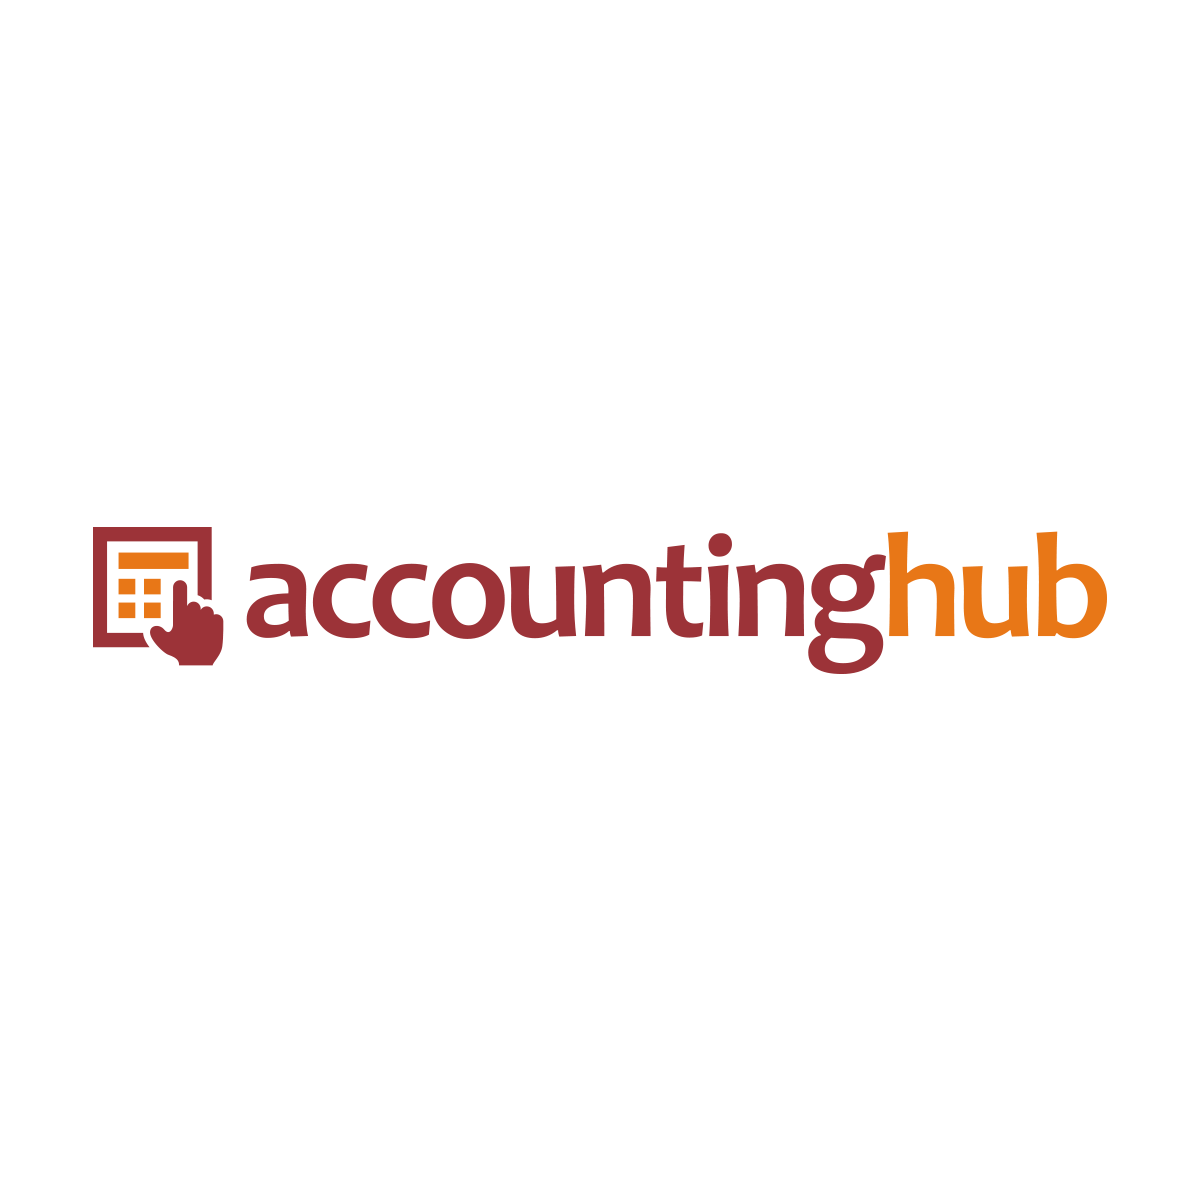 Accounting Hub and CapitalSquare partnership